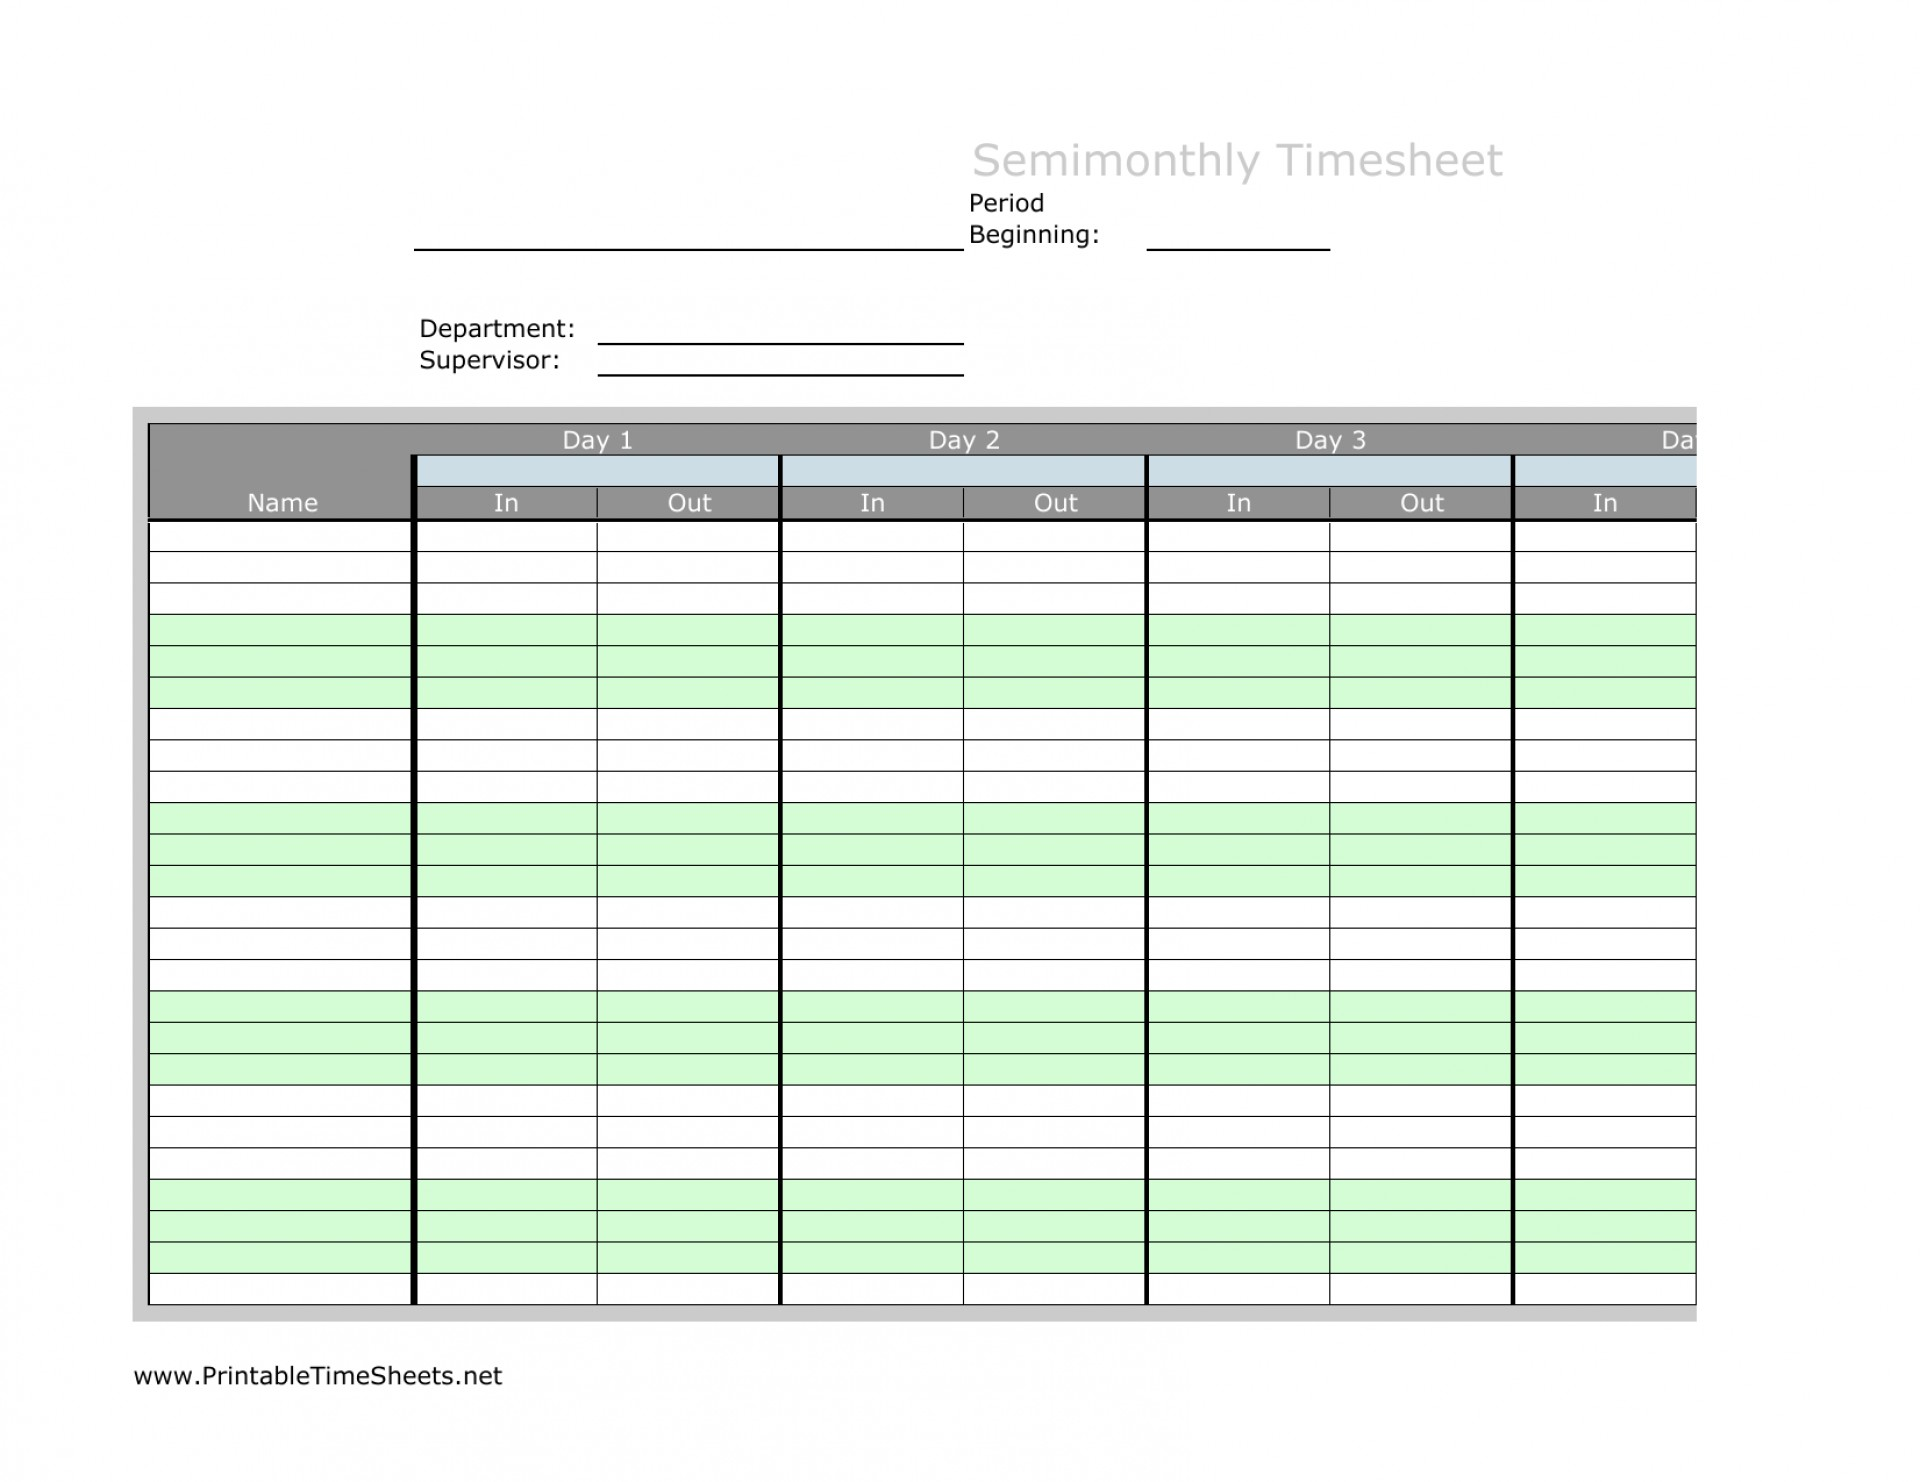 Semi Monthly Timesheet Template Excel Free Download